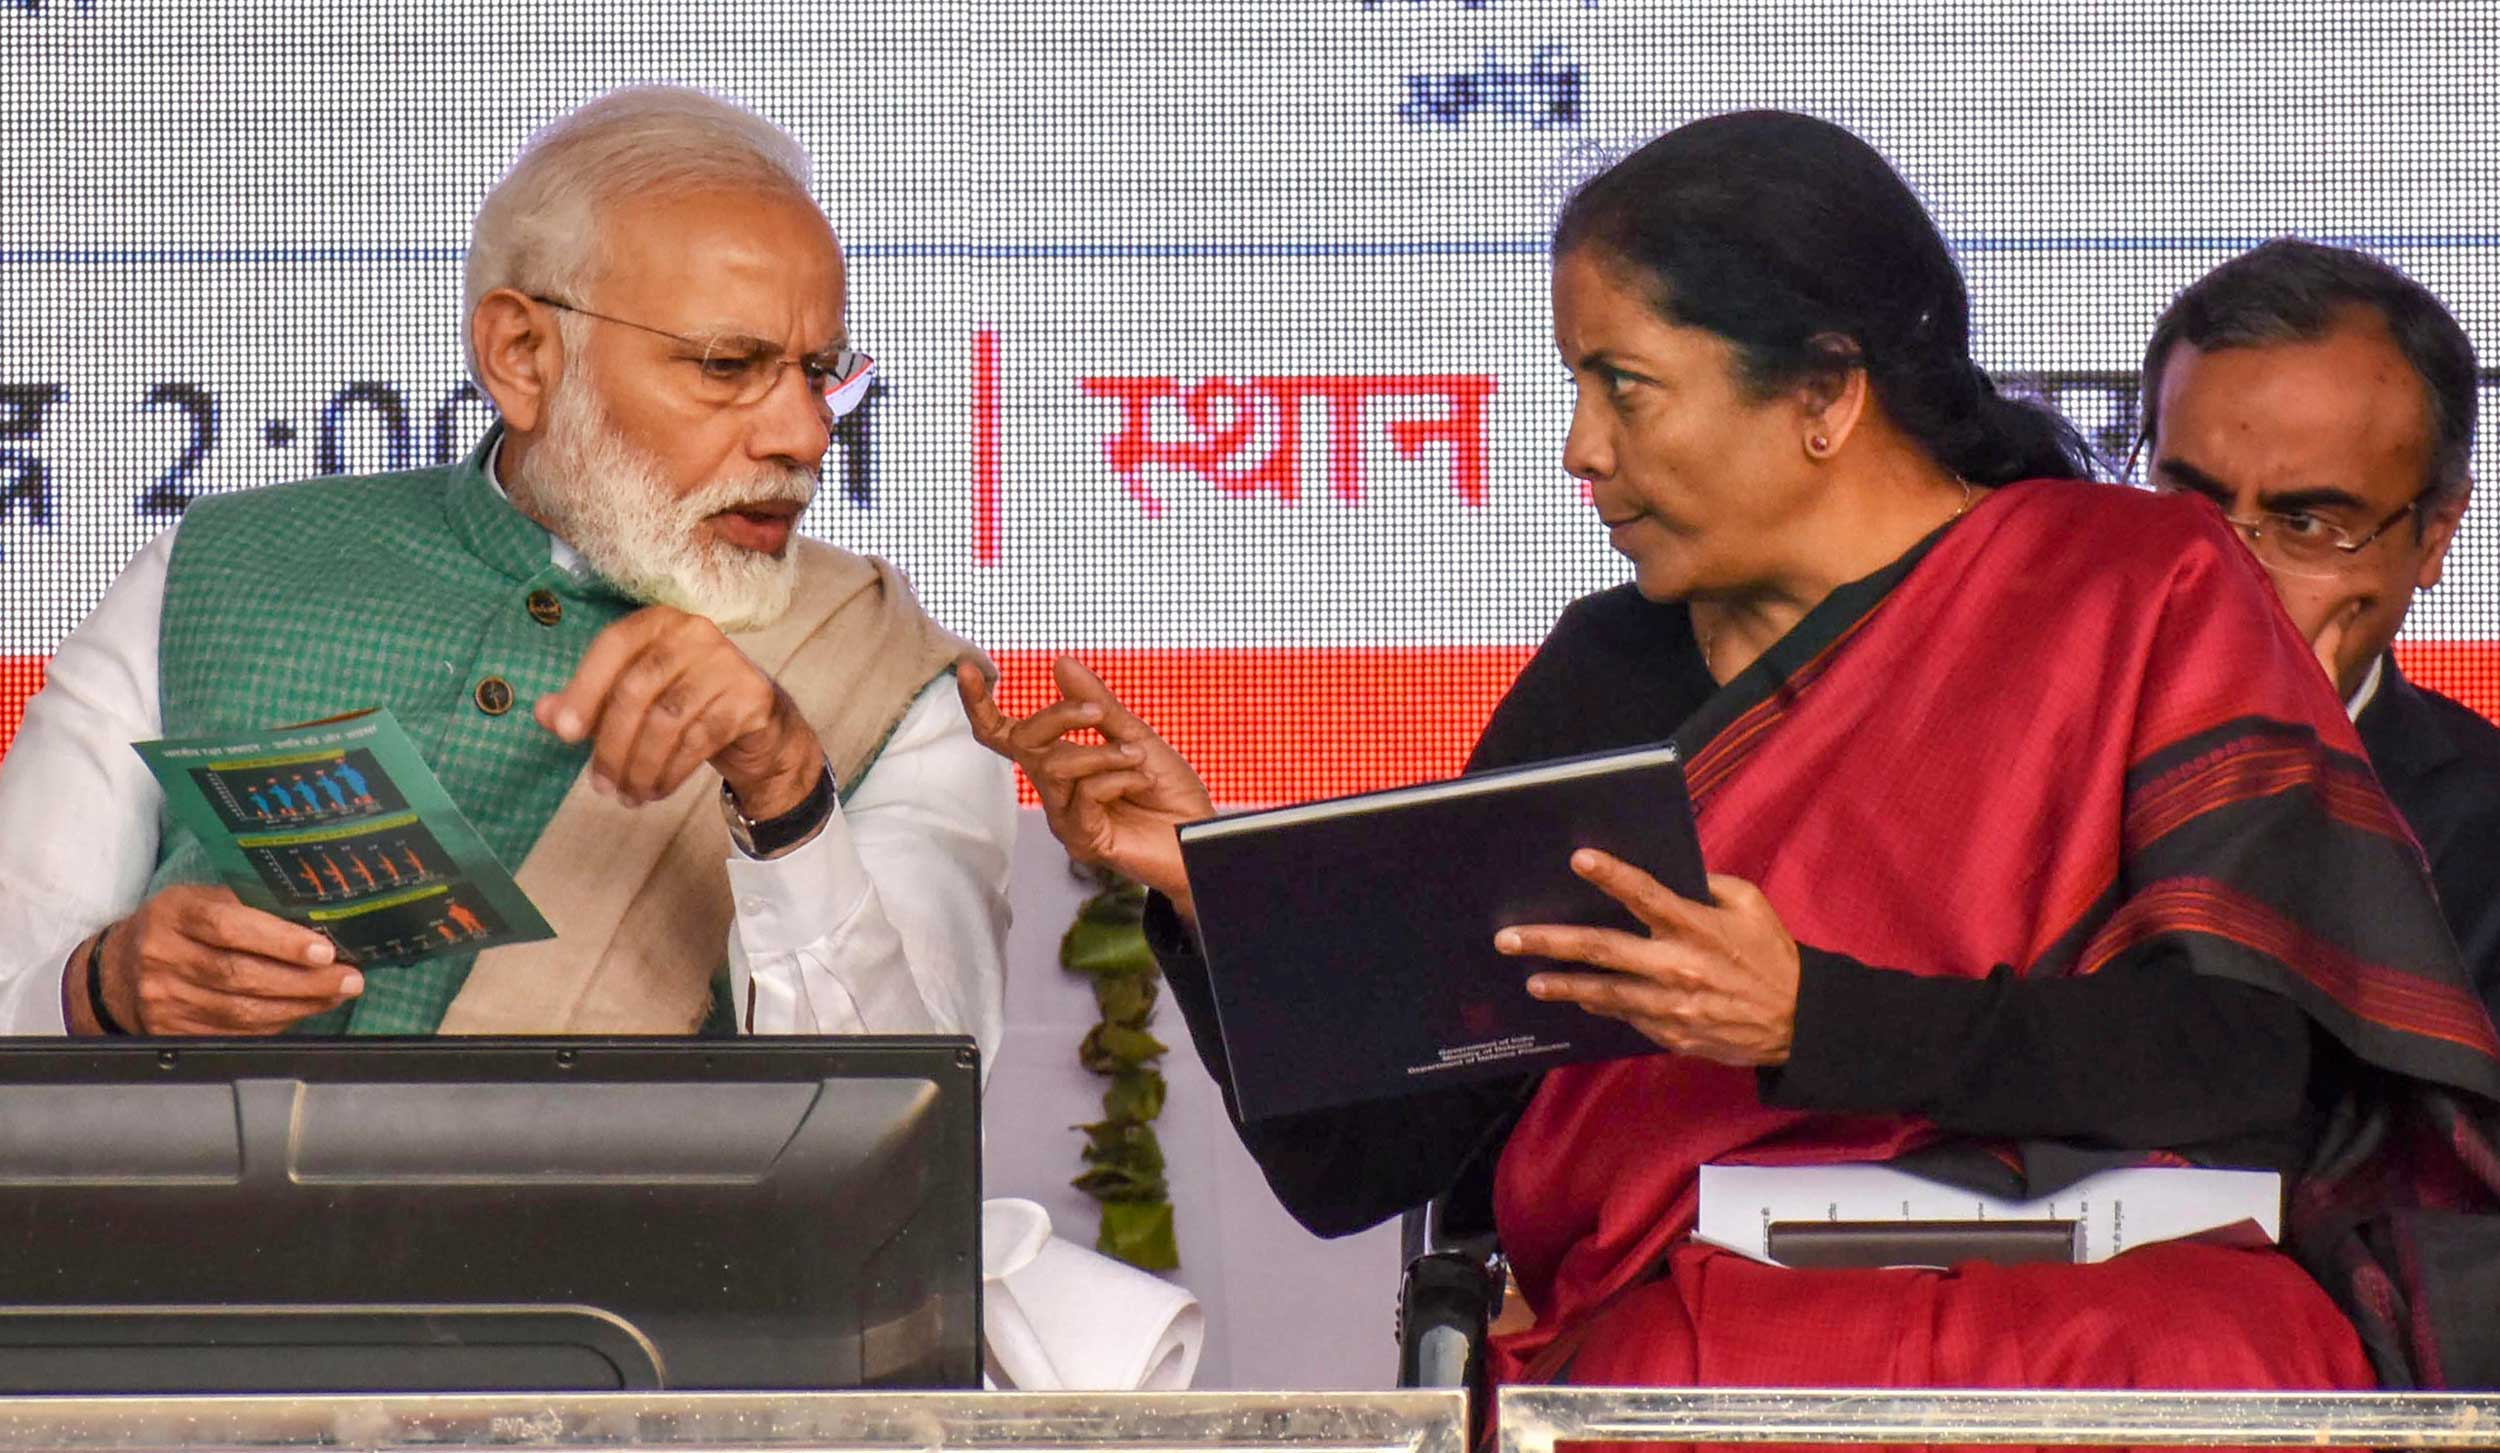 Narendra Modi with defence minister Nirmala Sitharaman during a public rally to launch a Kalashnikov rifles manufacturing facility in Amethi on Sunday.